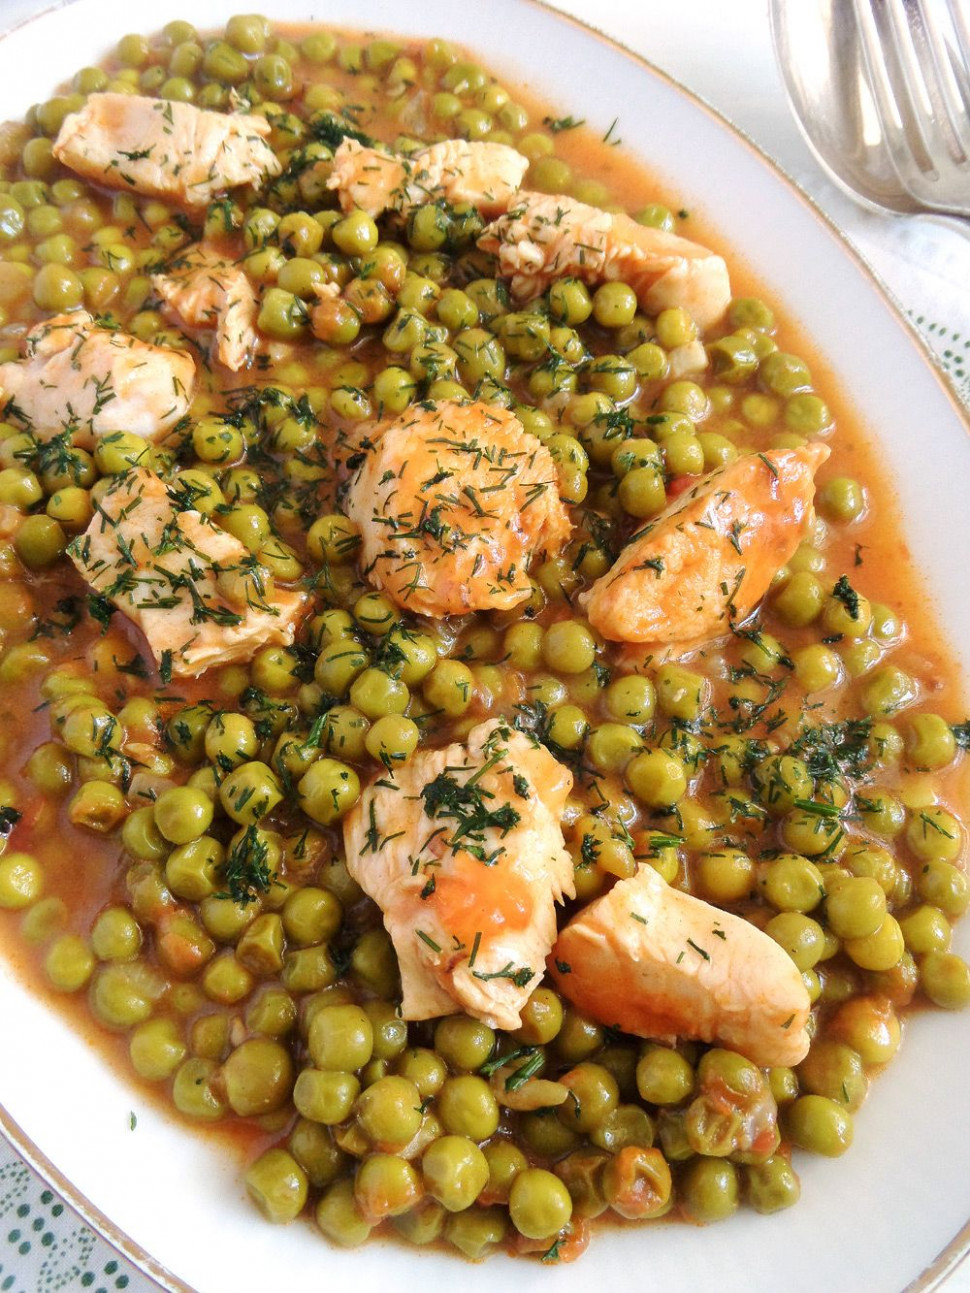 Romanian Pea and Chicken Stew - romanian food recipes